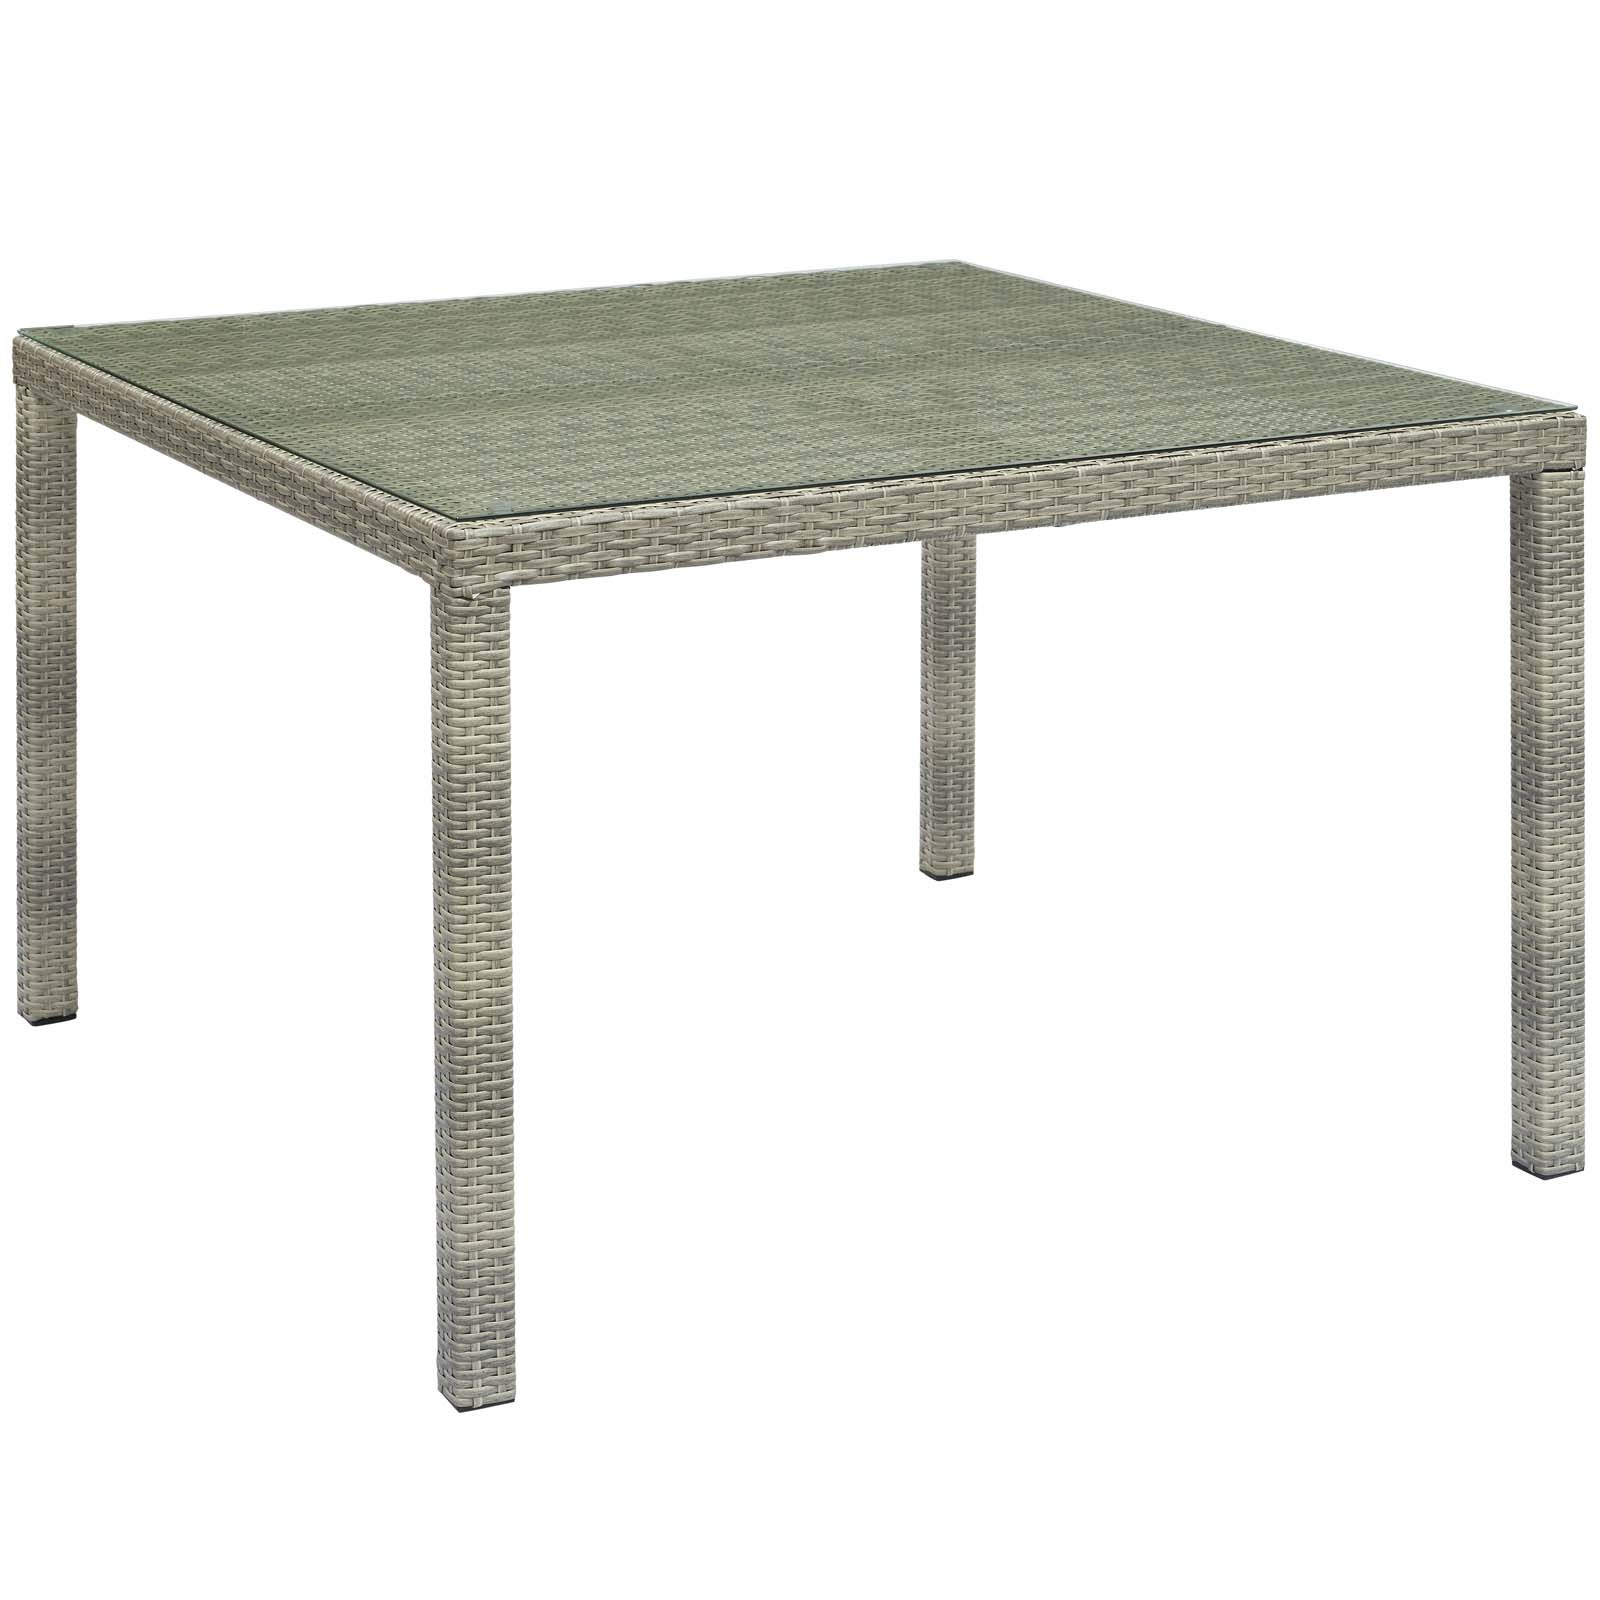 "Conduit 47"" Square Outdoor Patio Wicker Rattan Table in Light Gray"